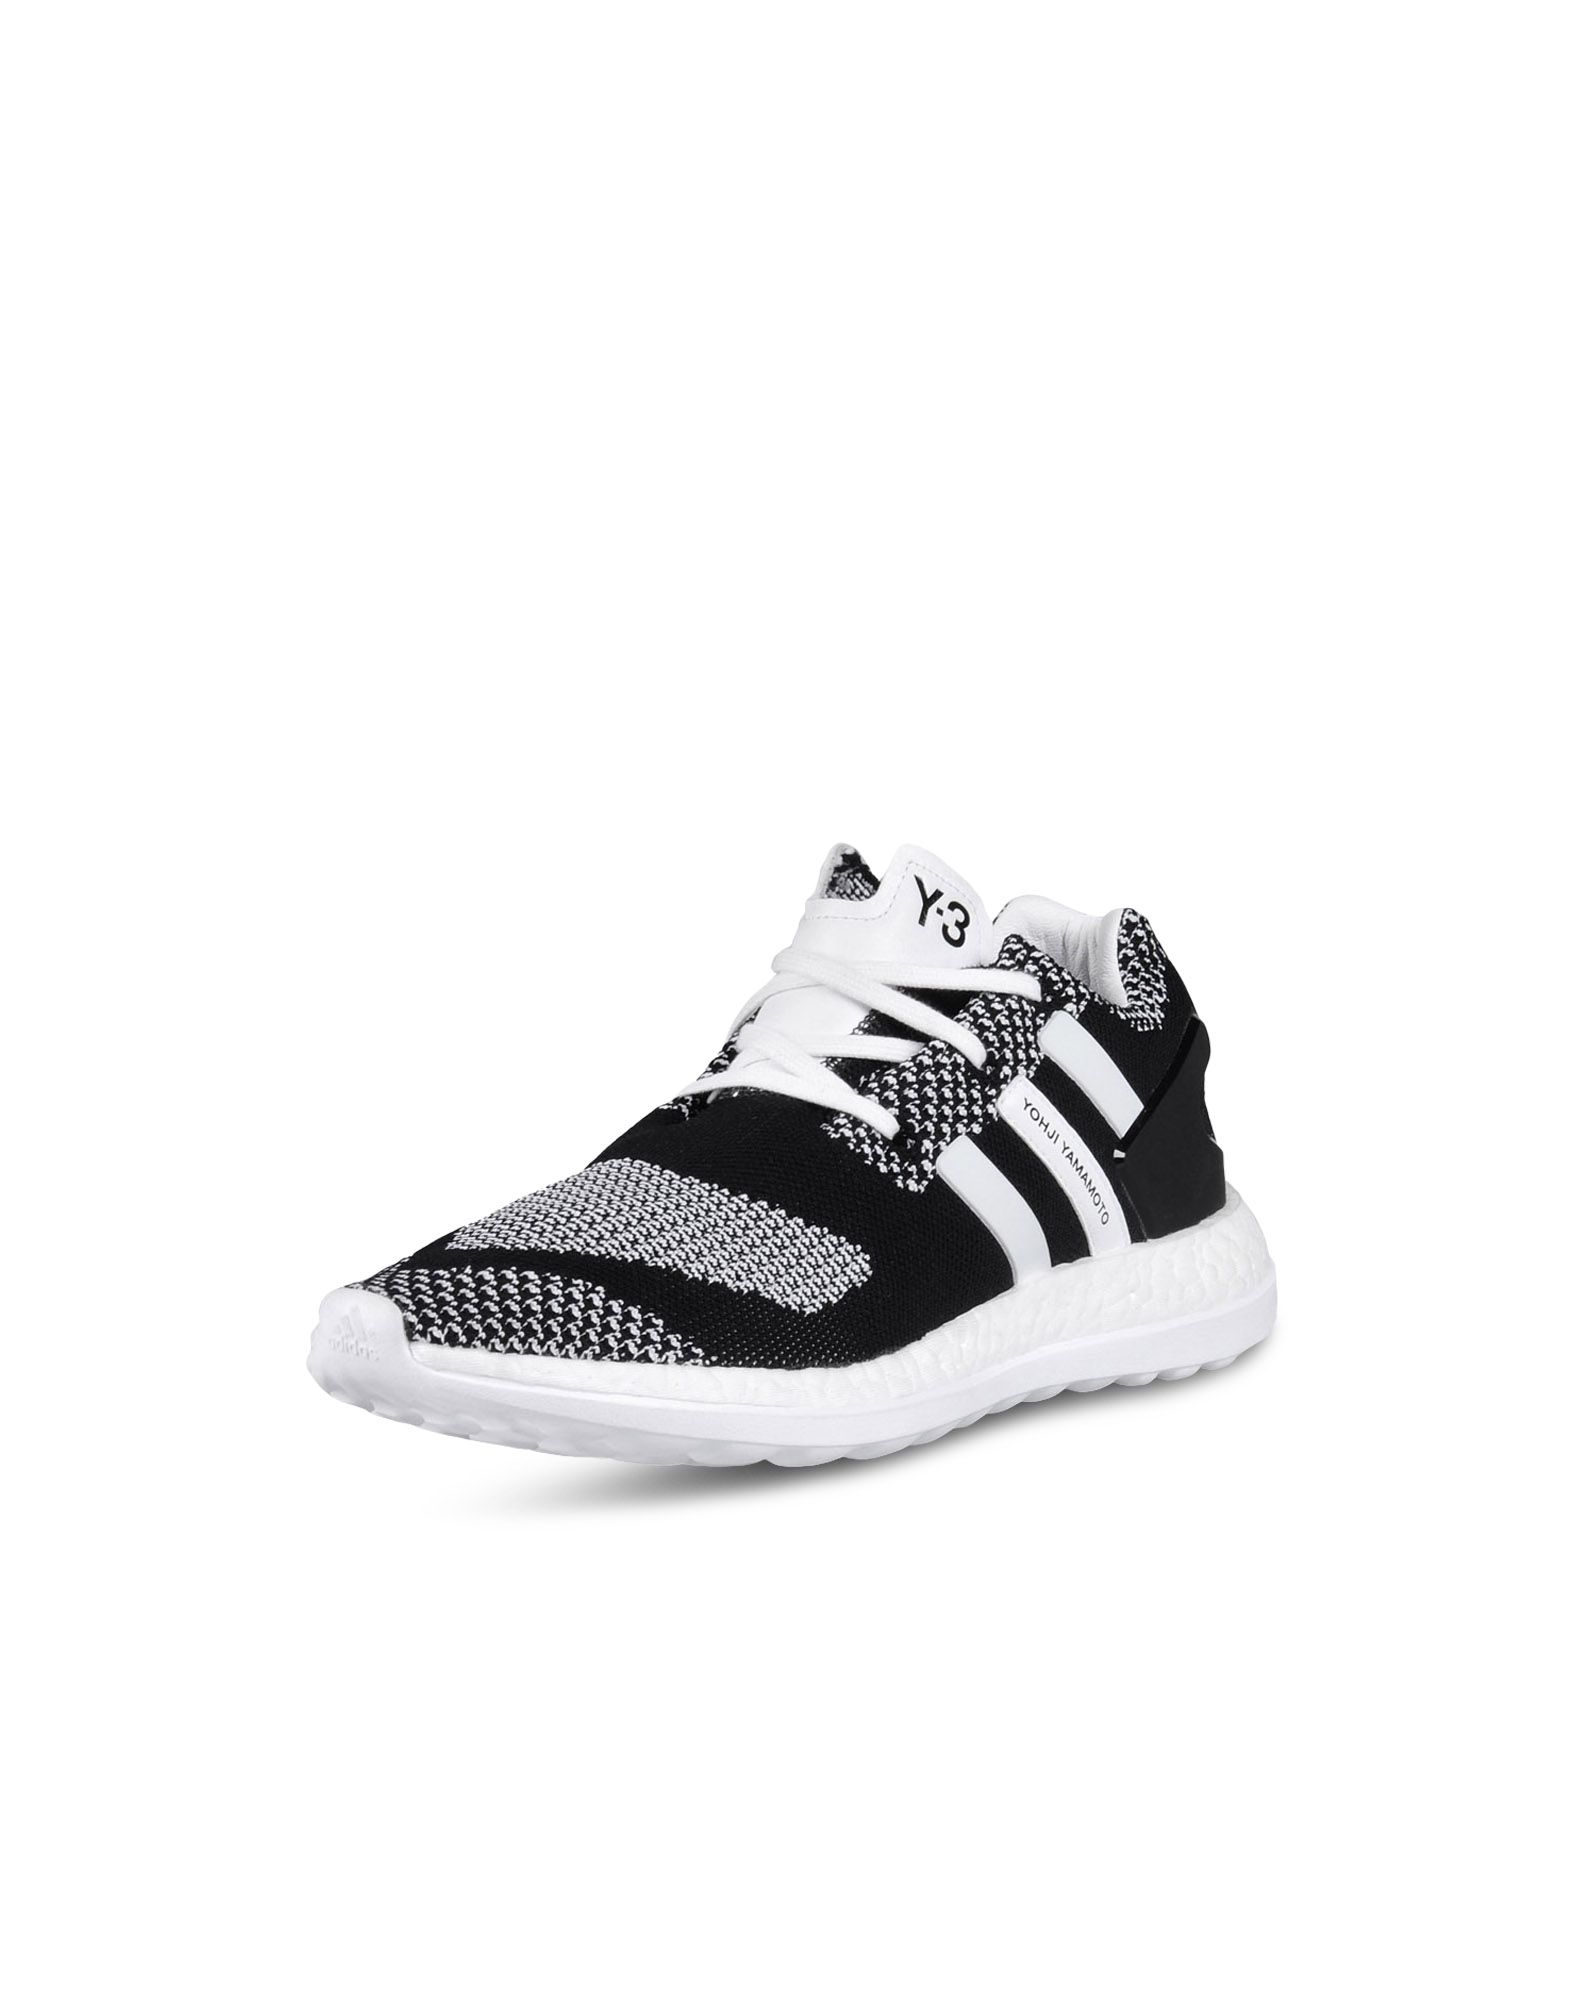 c0c41bfd9 adidas pure boost y3